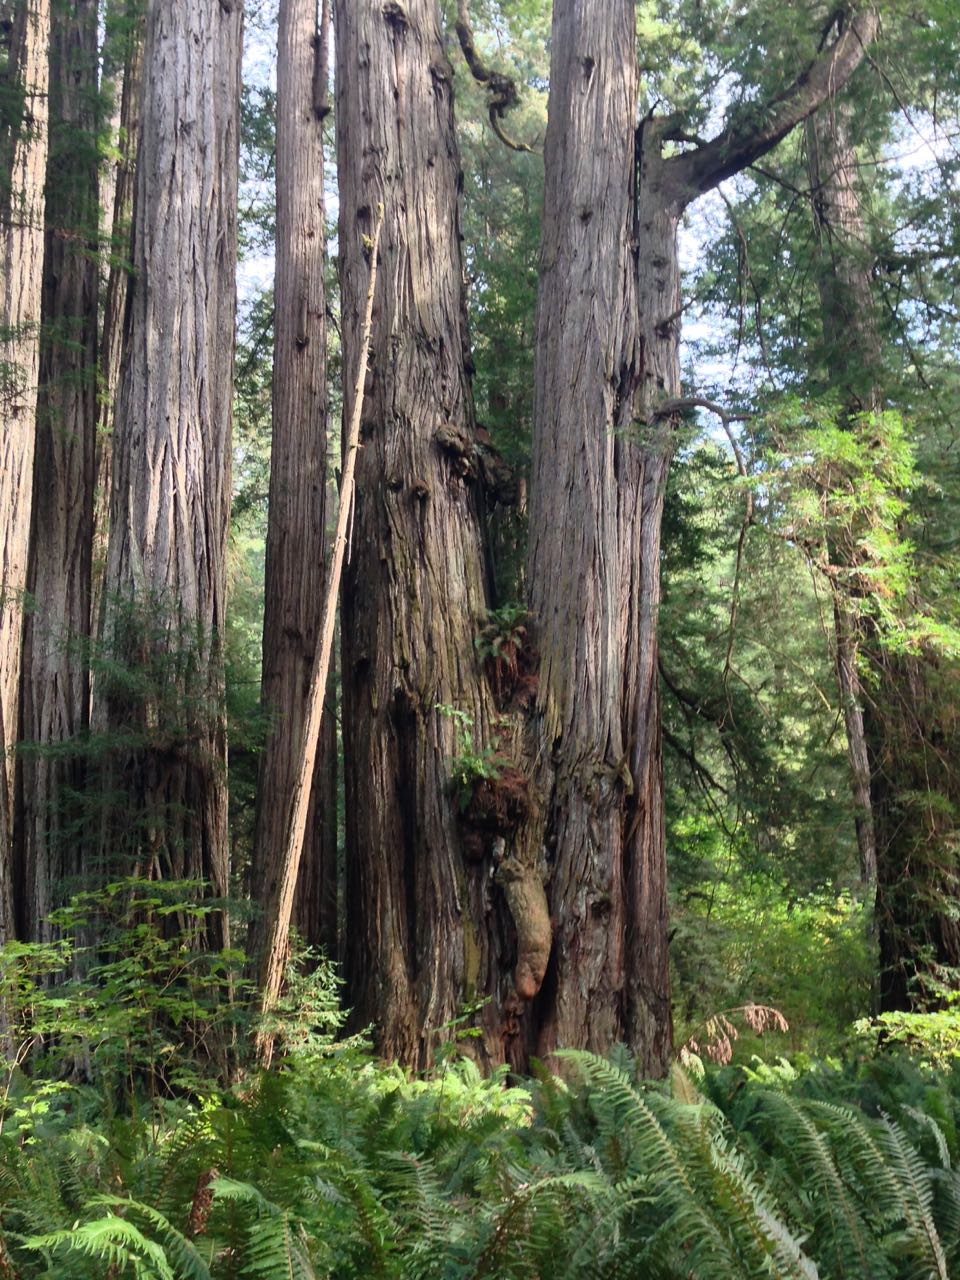 Redwoods 2017 10 08 279 Of 287